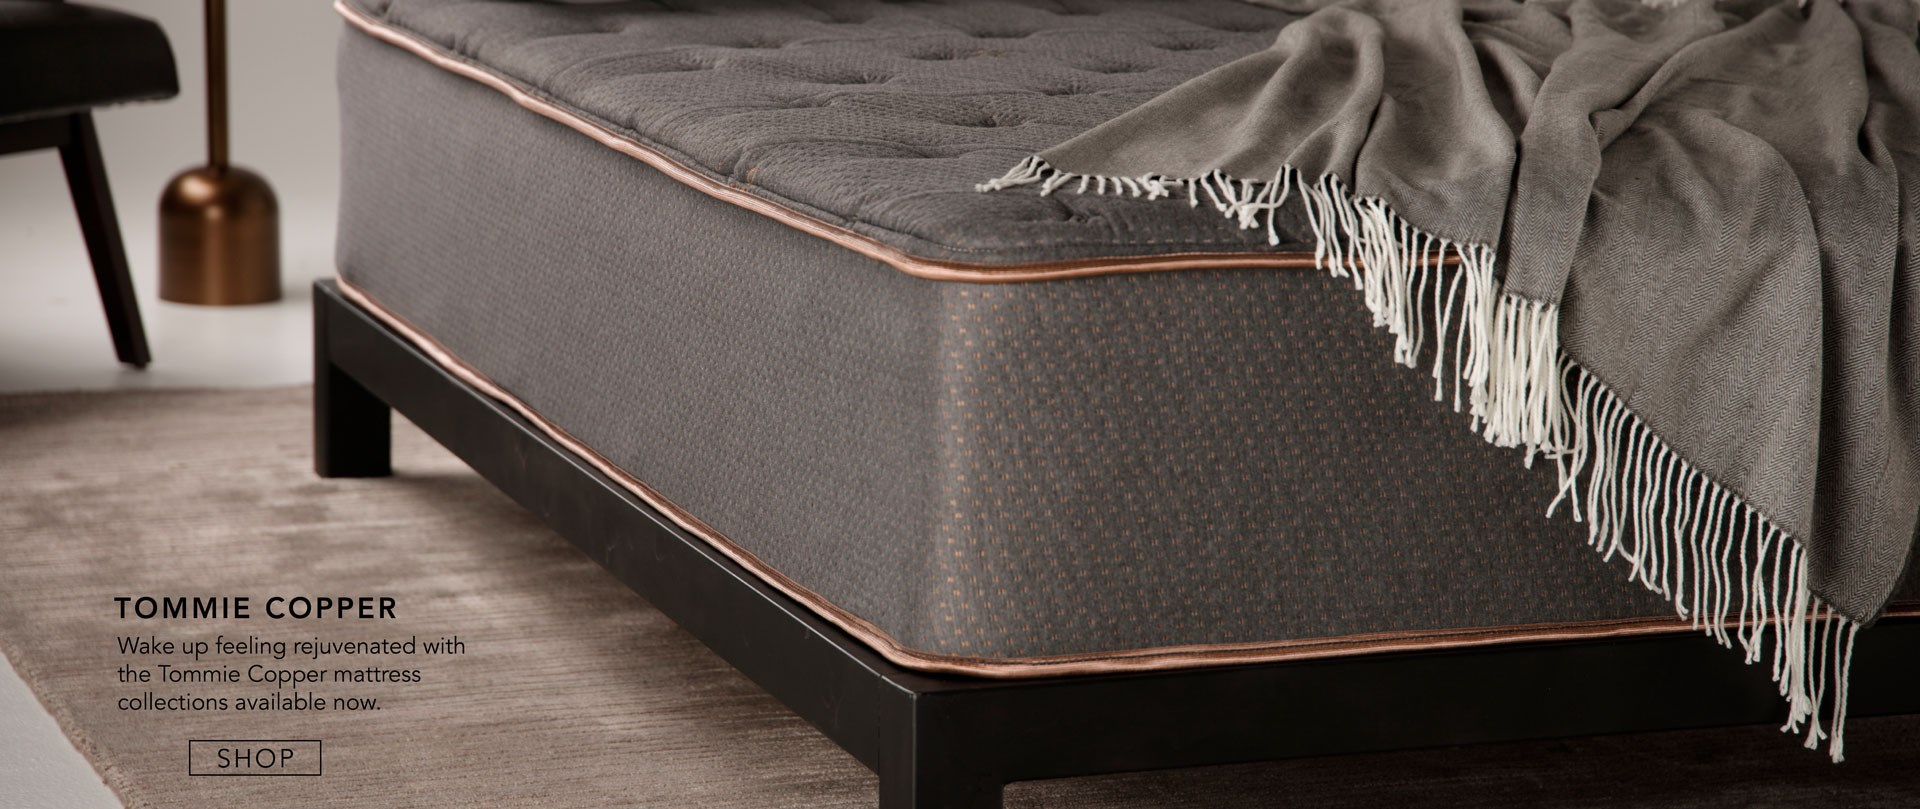 Shop Tommie Copper mattress collections